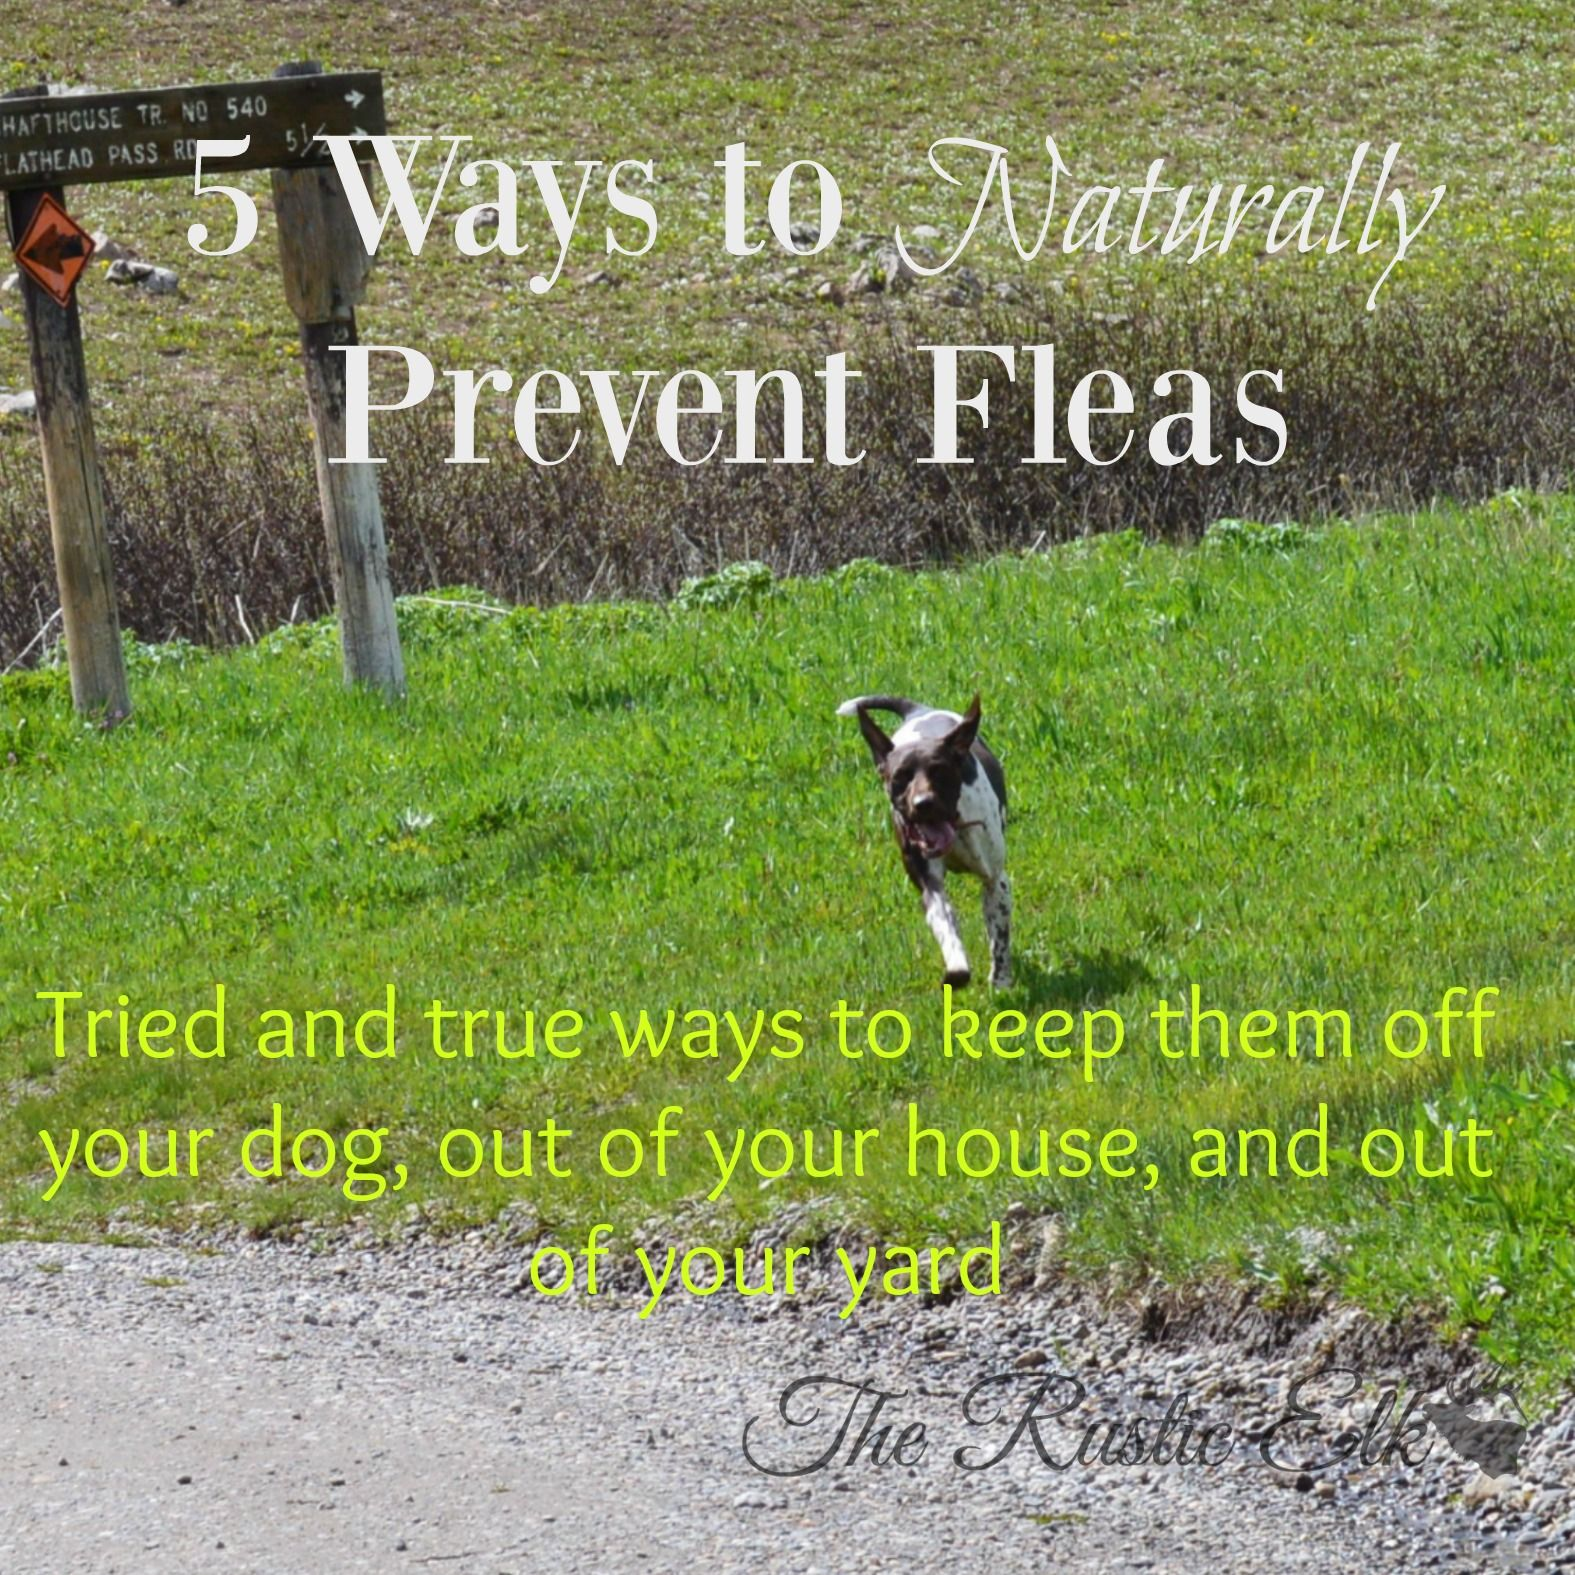 Fleas a nuisance? Here are 5 tried and true